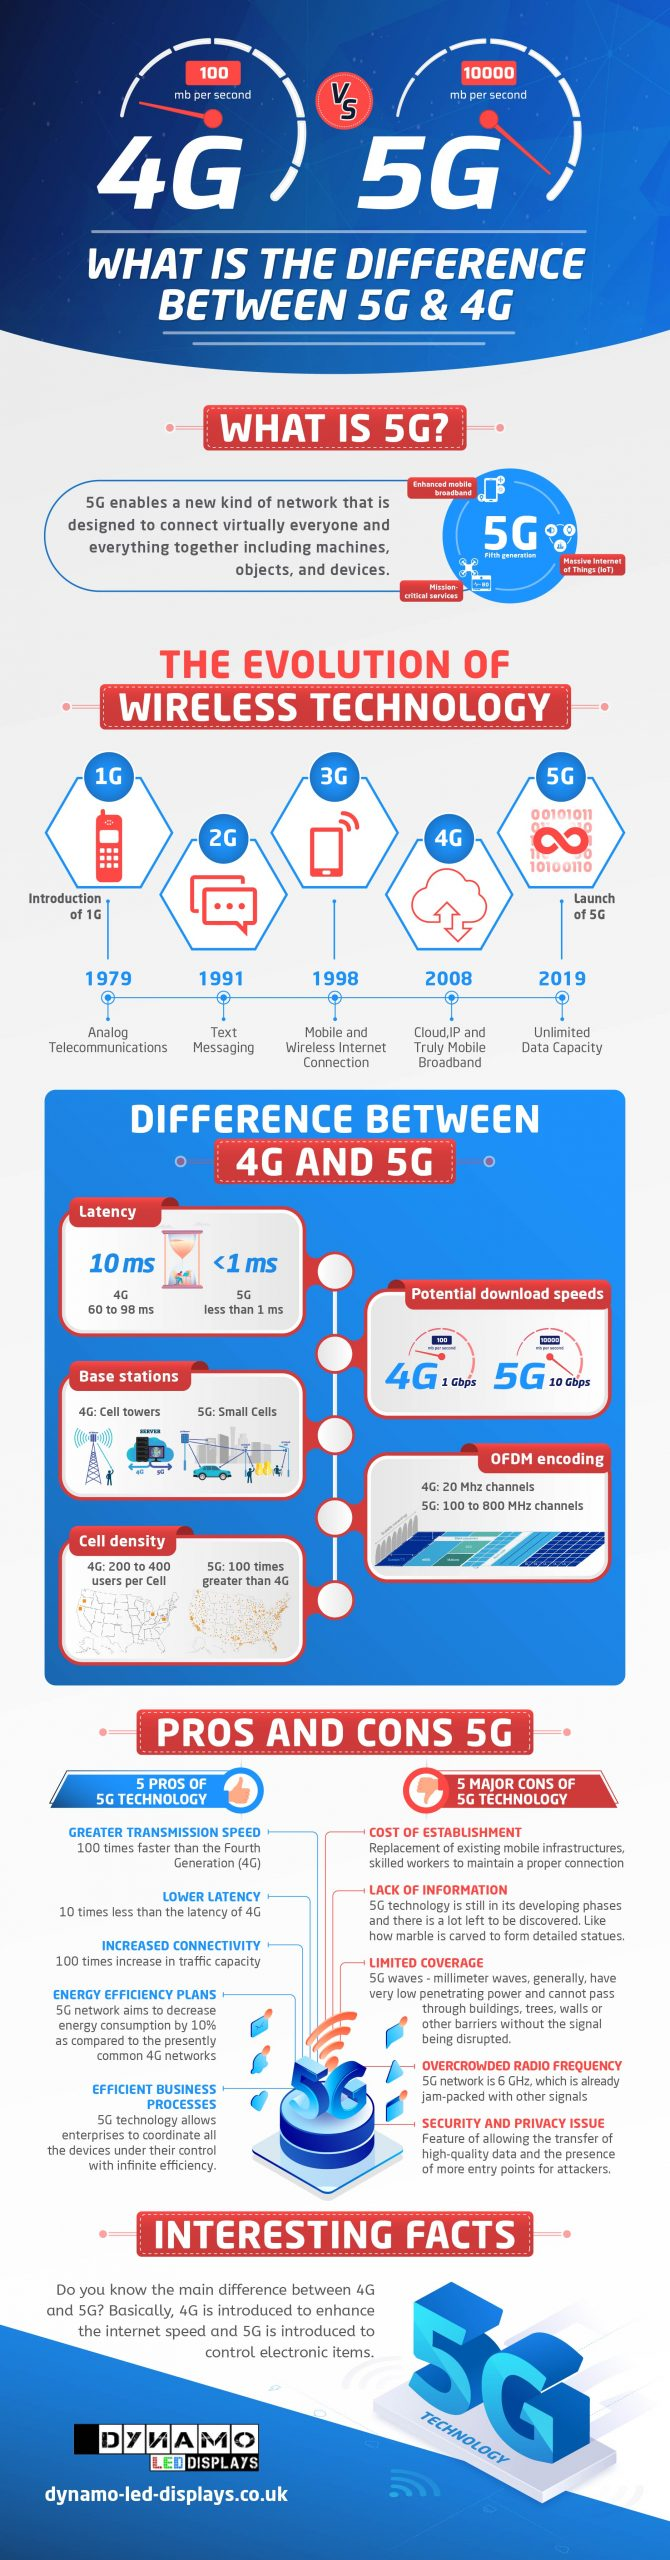 what is 5g and 4g